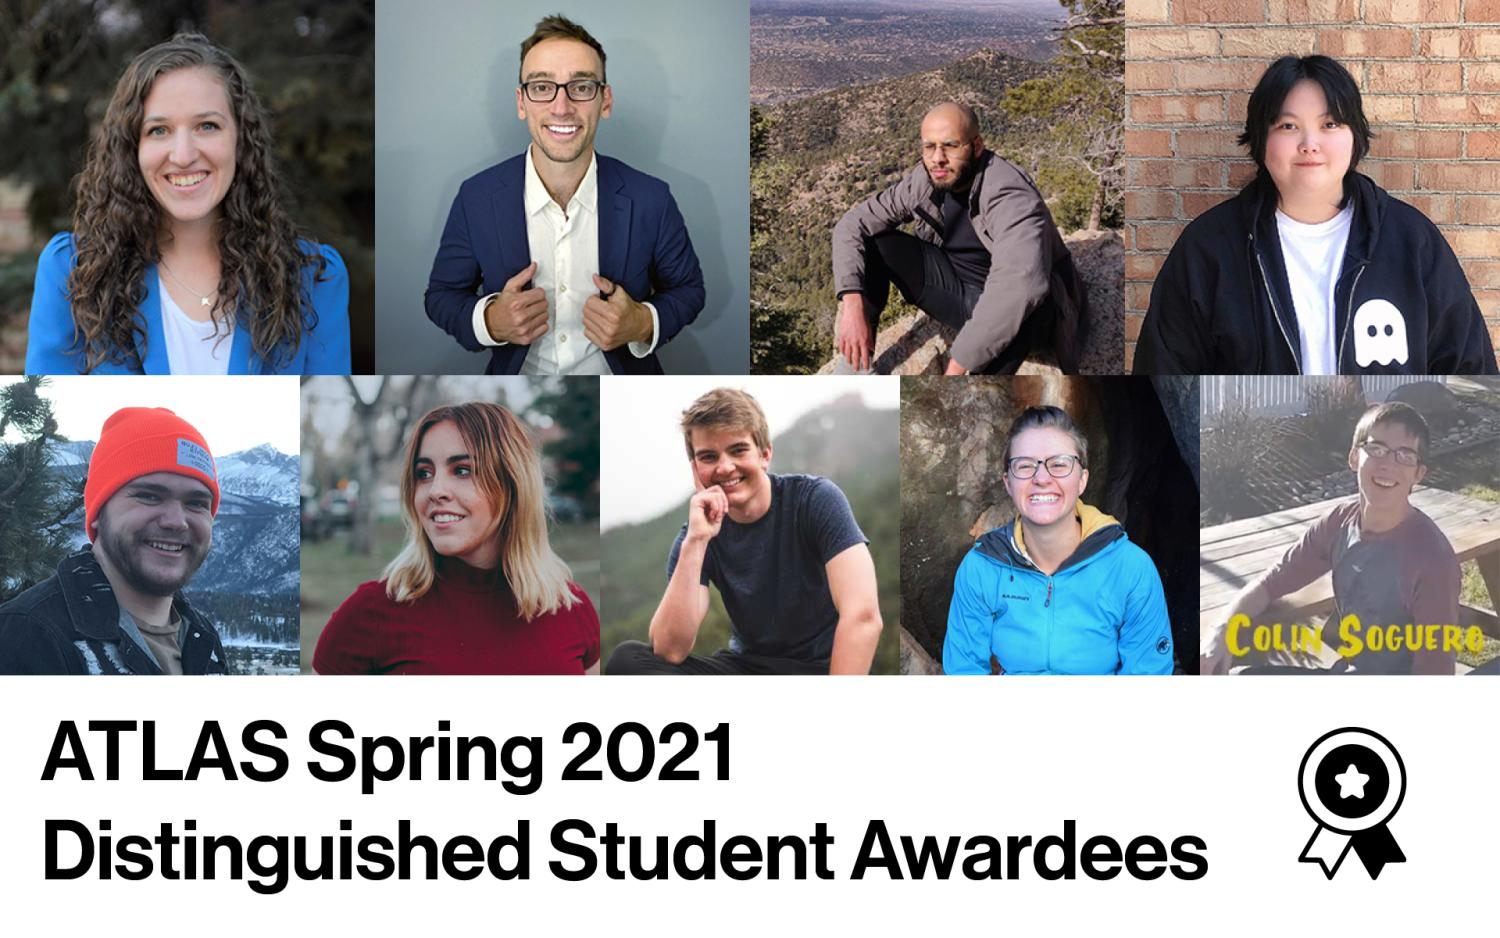 A collage of photos of the ATLAS students who received ATLAS awards in 2021.